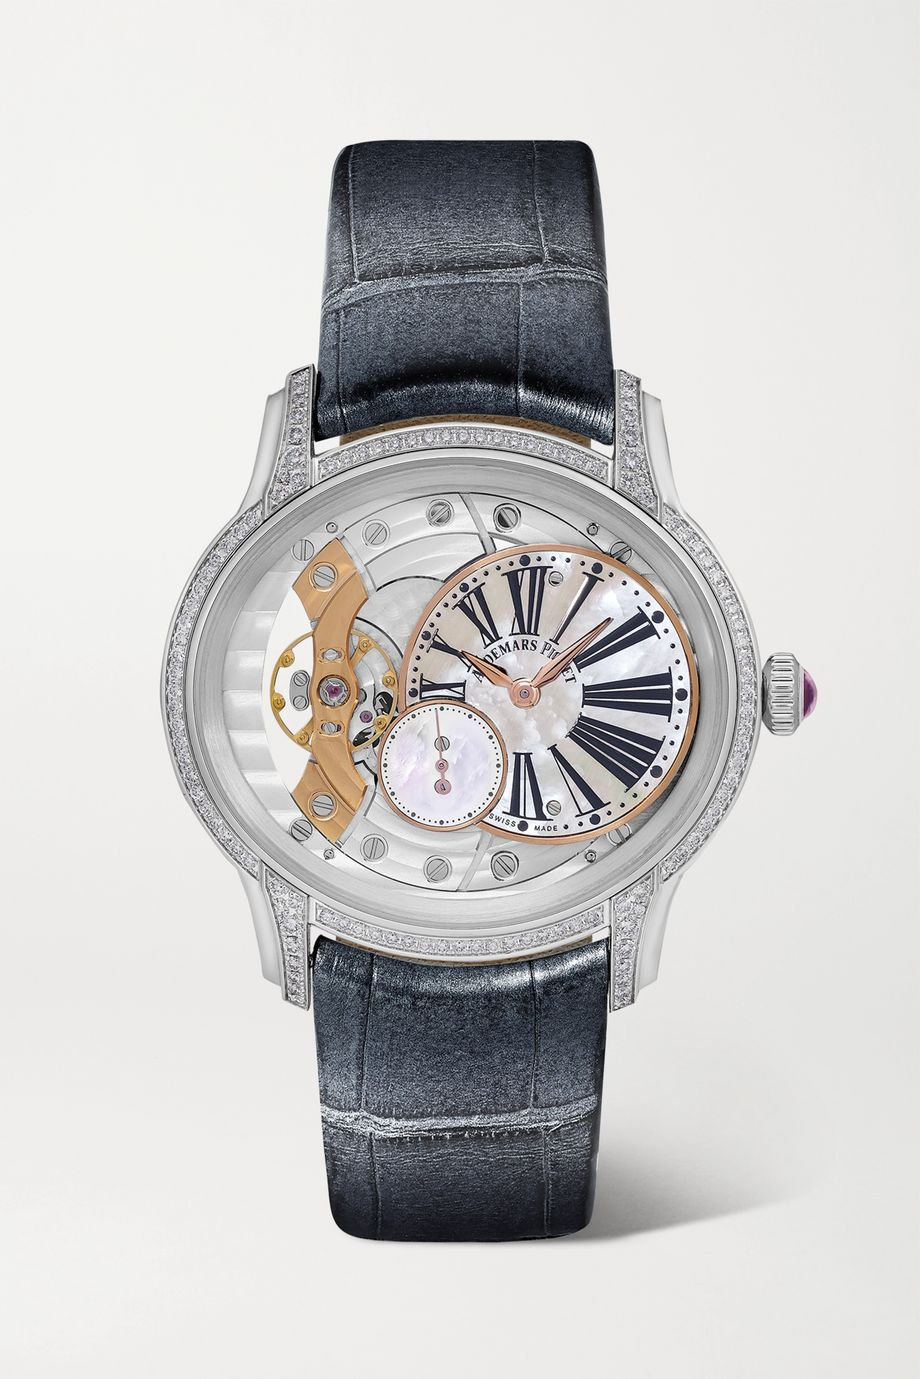 Audemars Piguet Millenary 39.5mm 18-karat white gold, alligator, diamond and mother-of-pearl watch